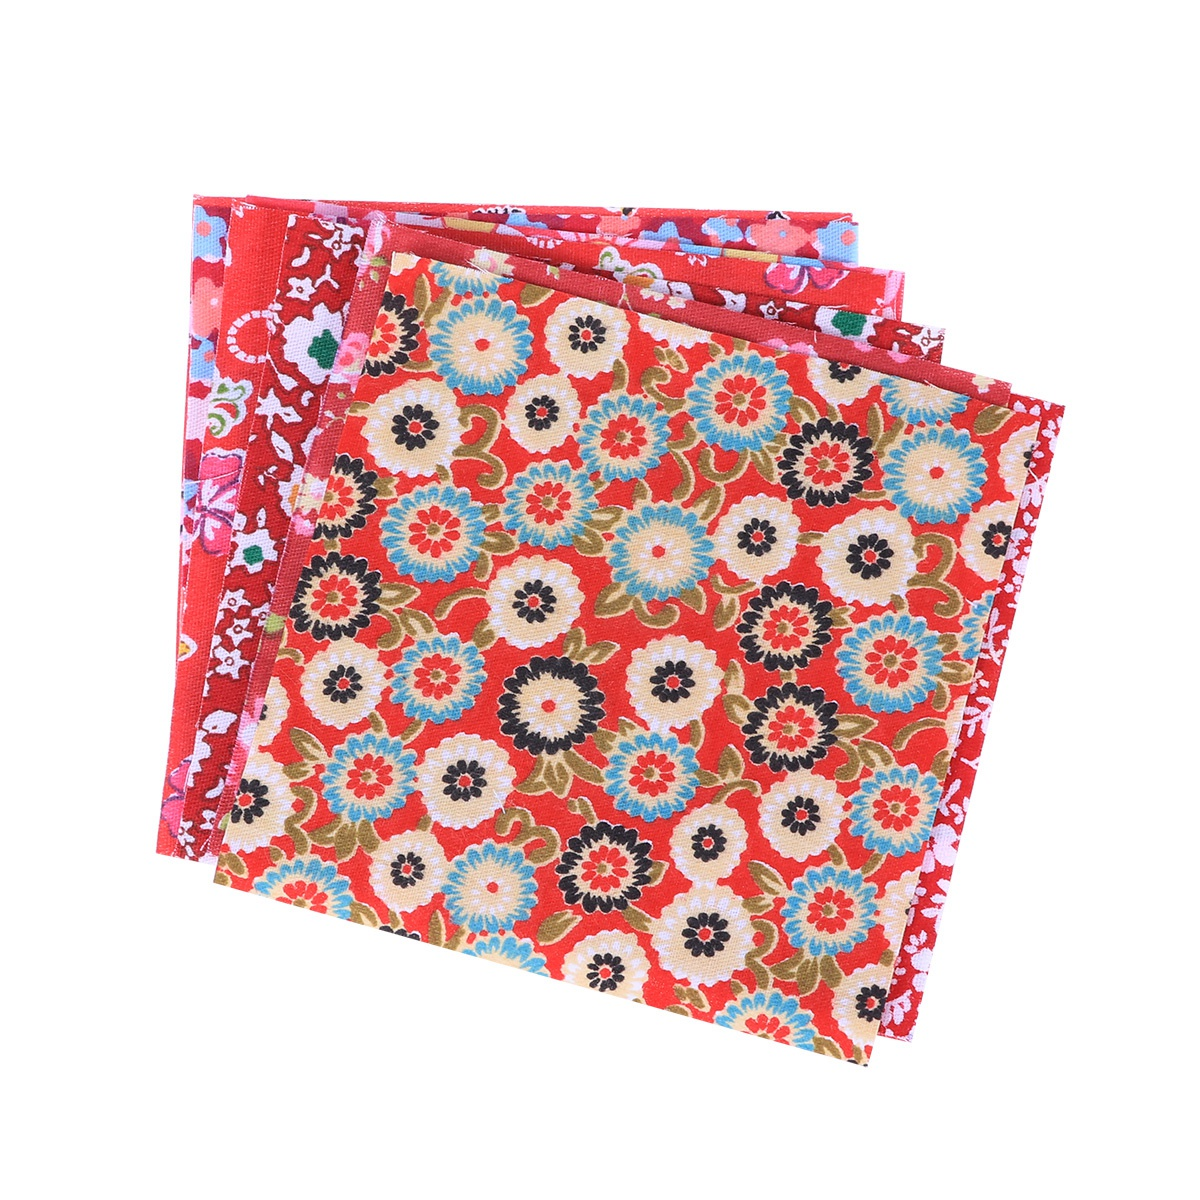 10 Pcs Cotton Twill Fabric Handmade DIY Printed Floral Cotton Cloth Fabric Printing Cloth for Patchwork Quilting Sewing